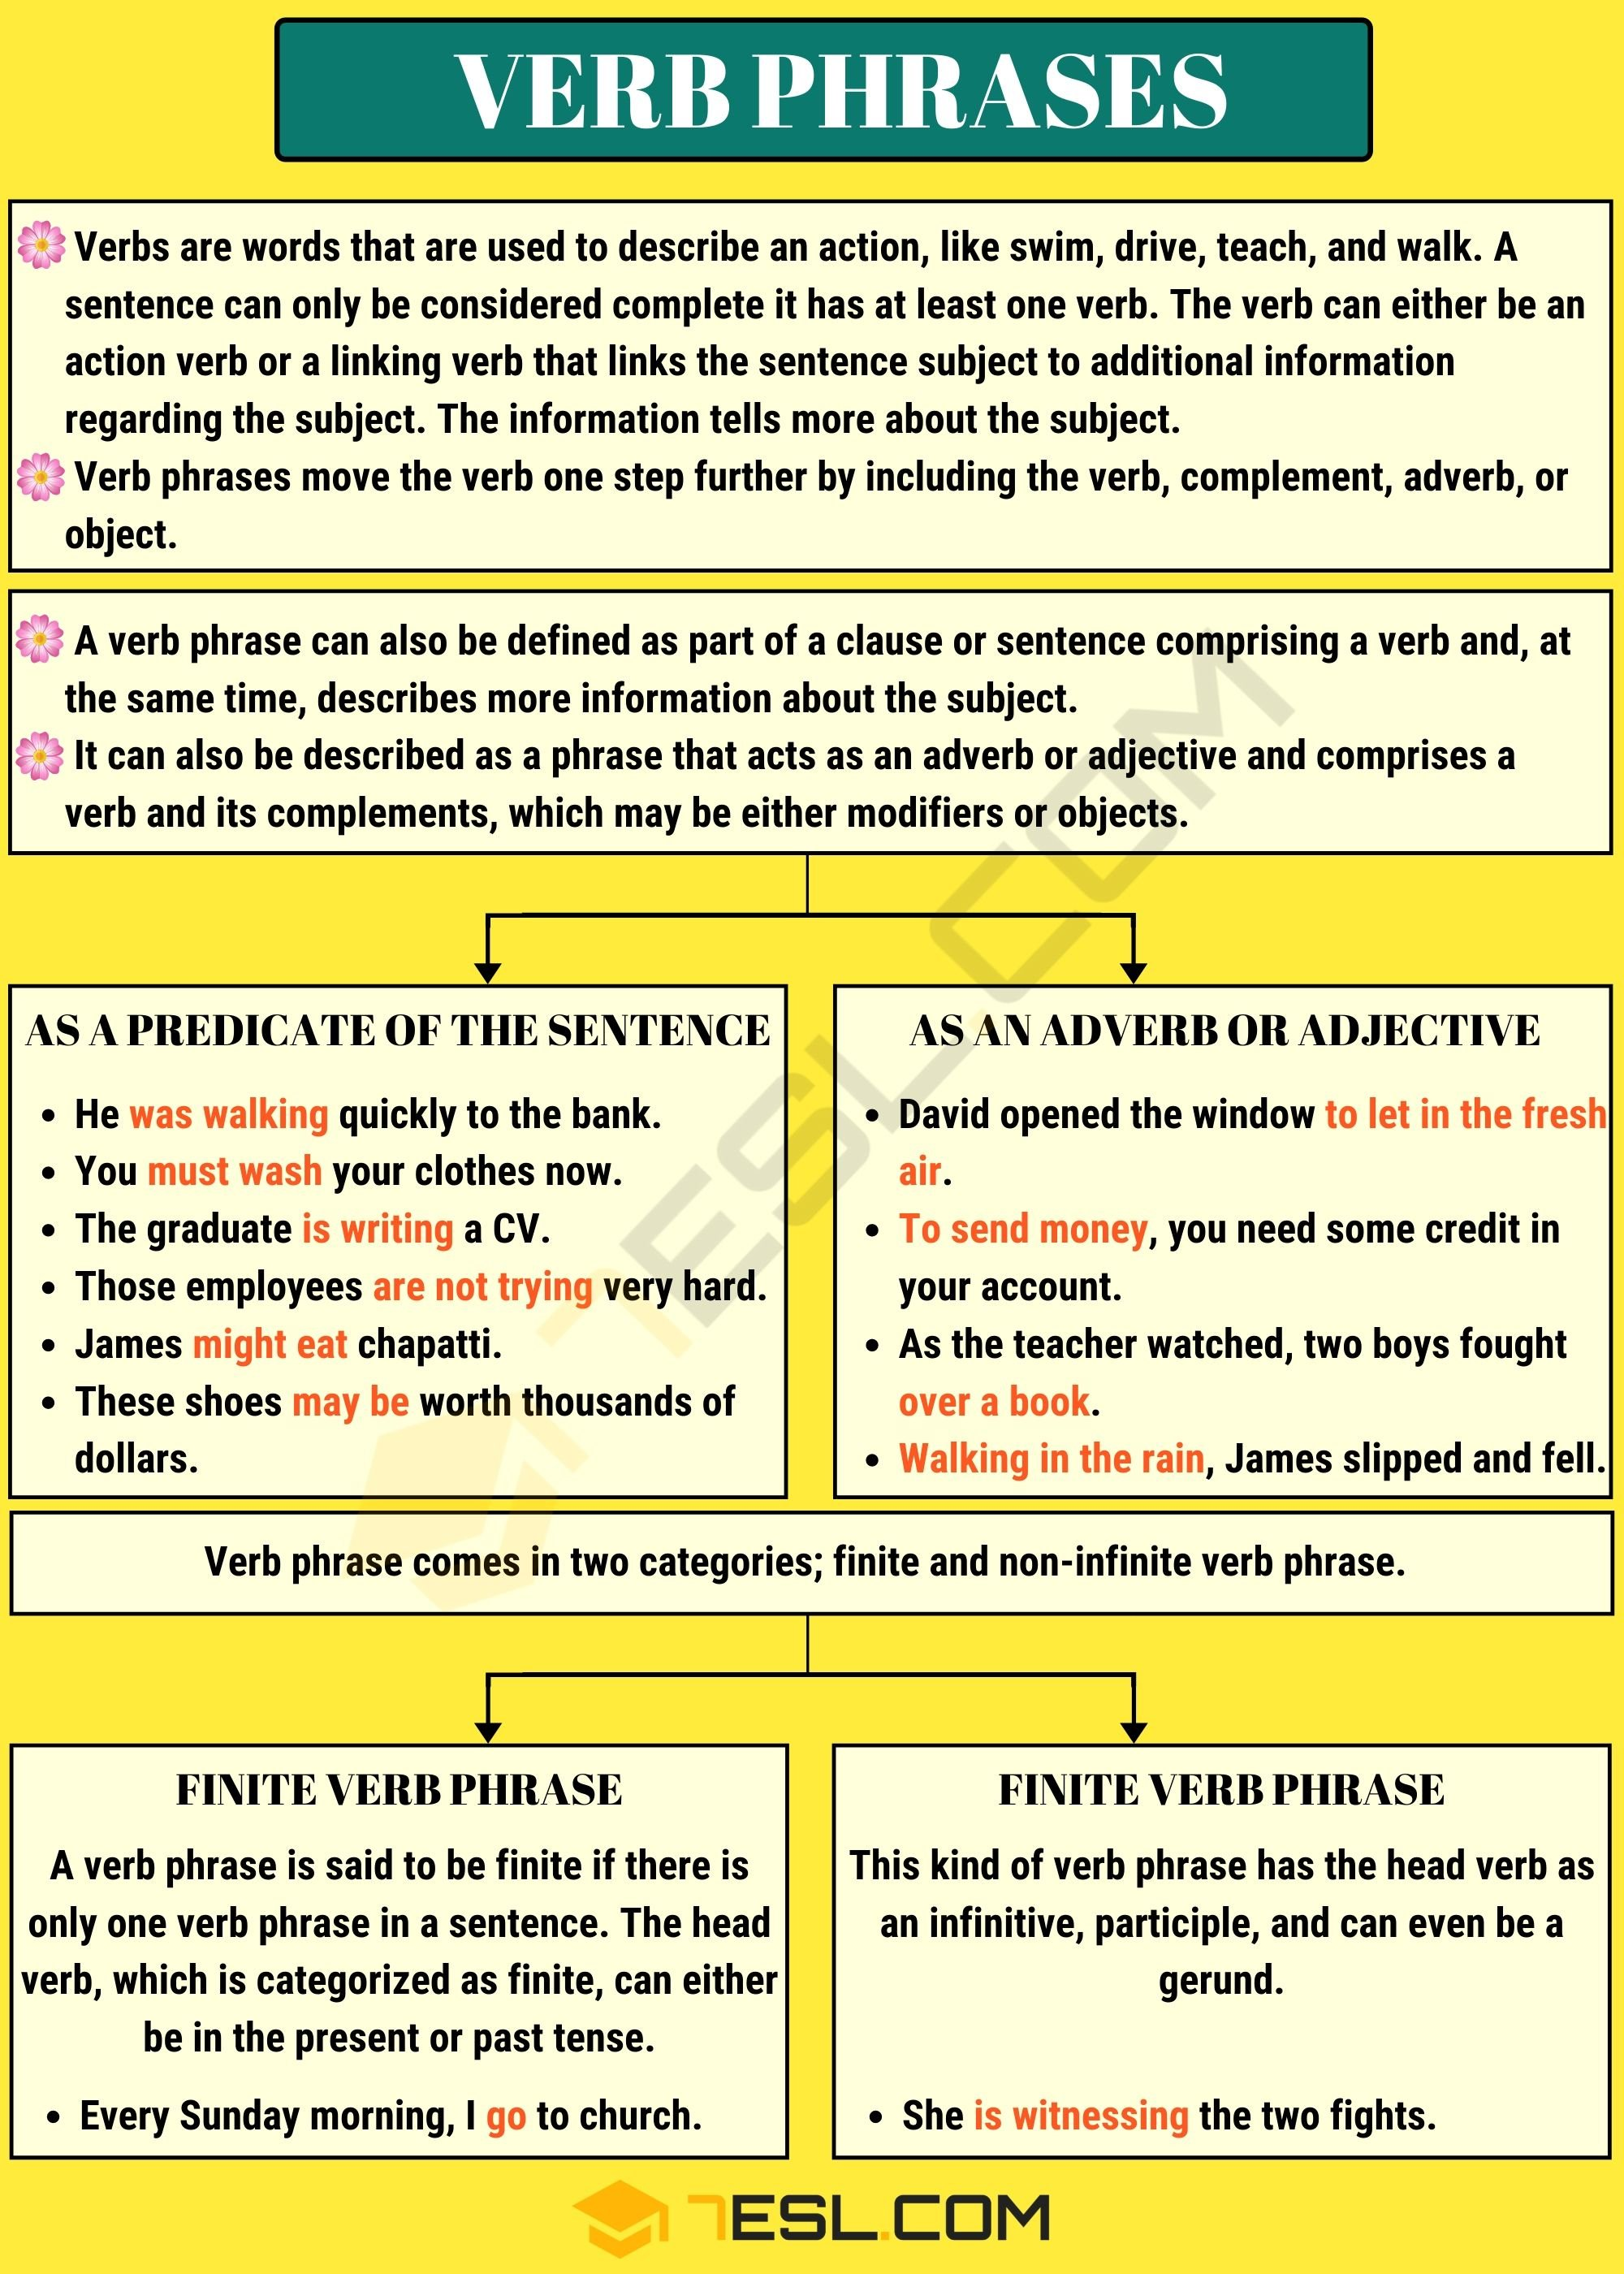 Verb Phrase: Definition, Functions And Useful Examples - 7 E S L